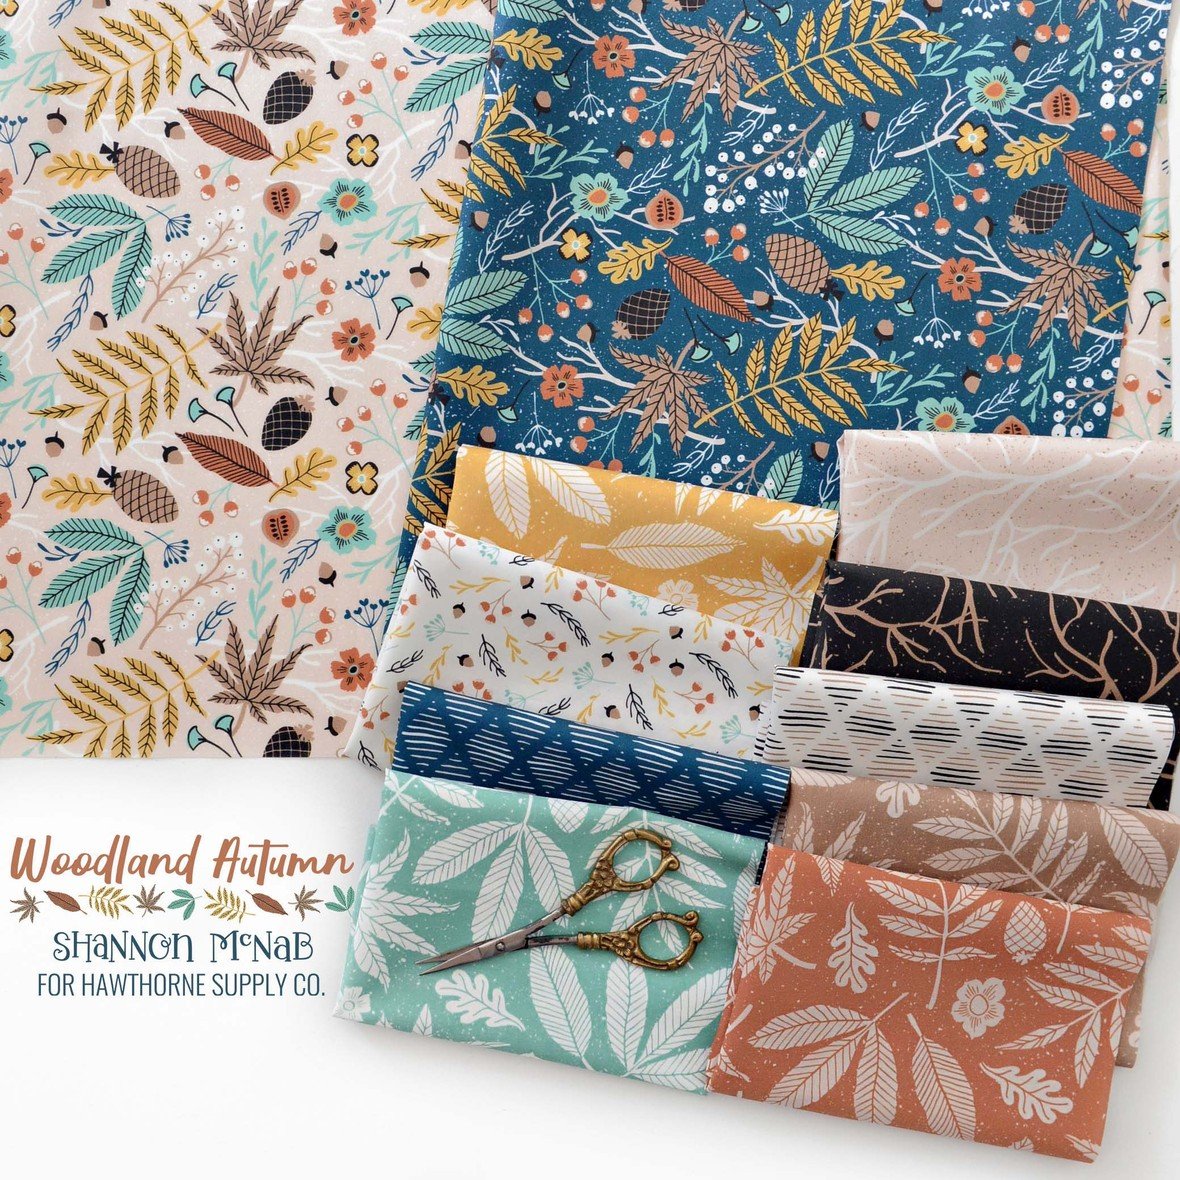 Woodland Autumn Fabric Shannon McNab at Hawthorne Supply Co.